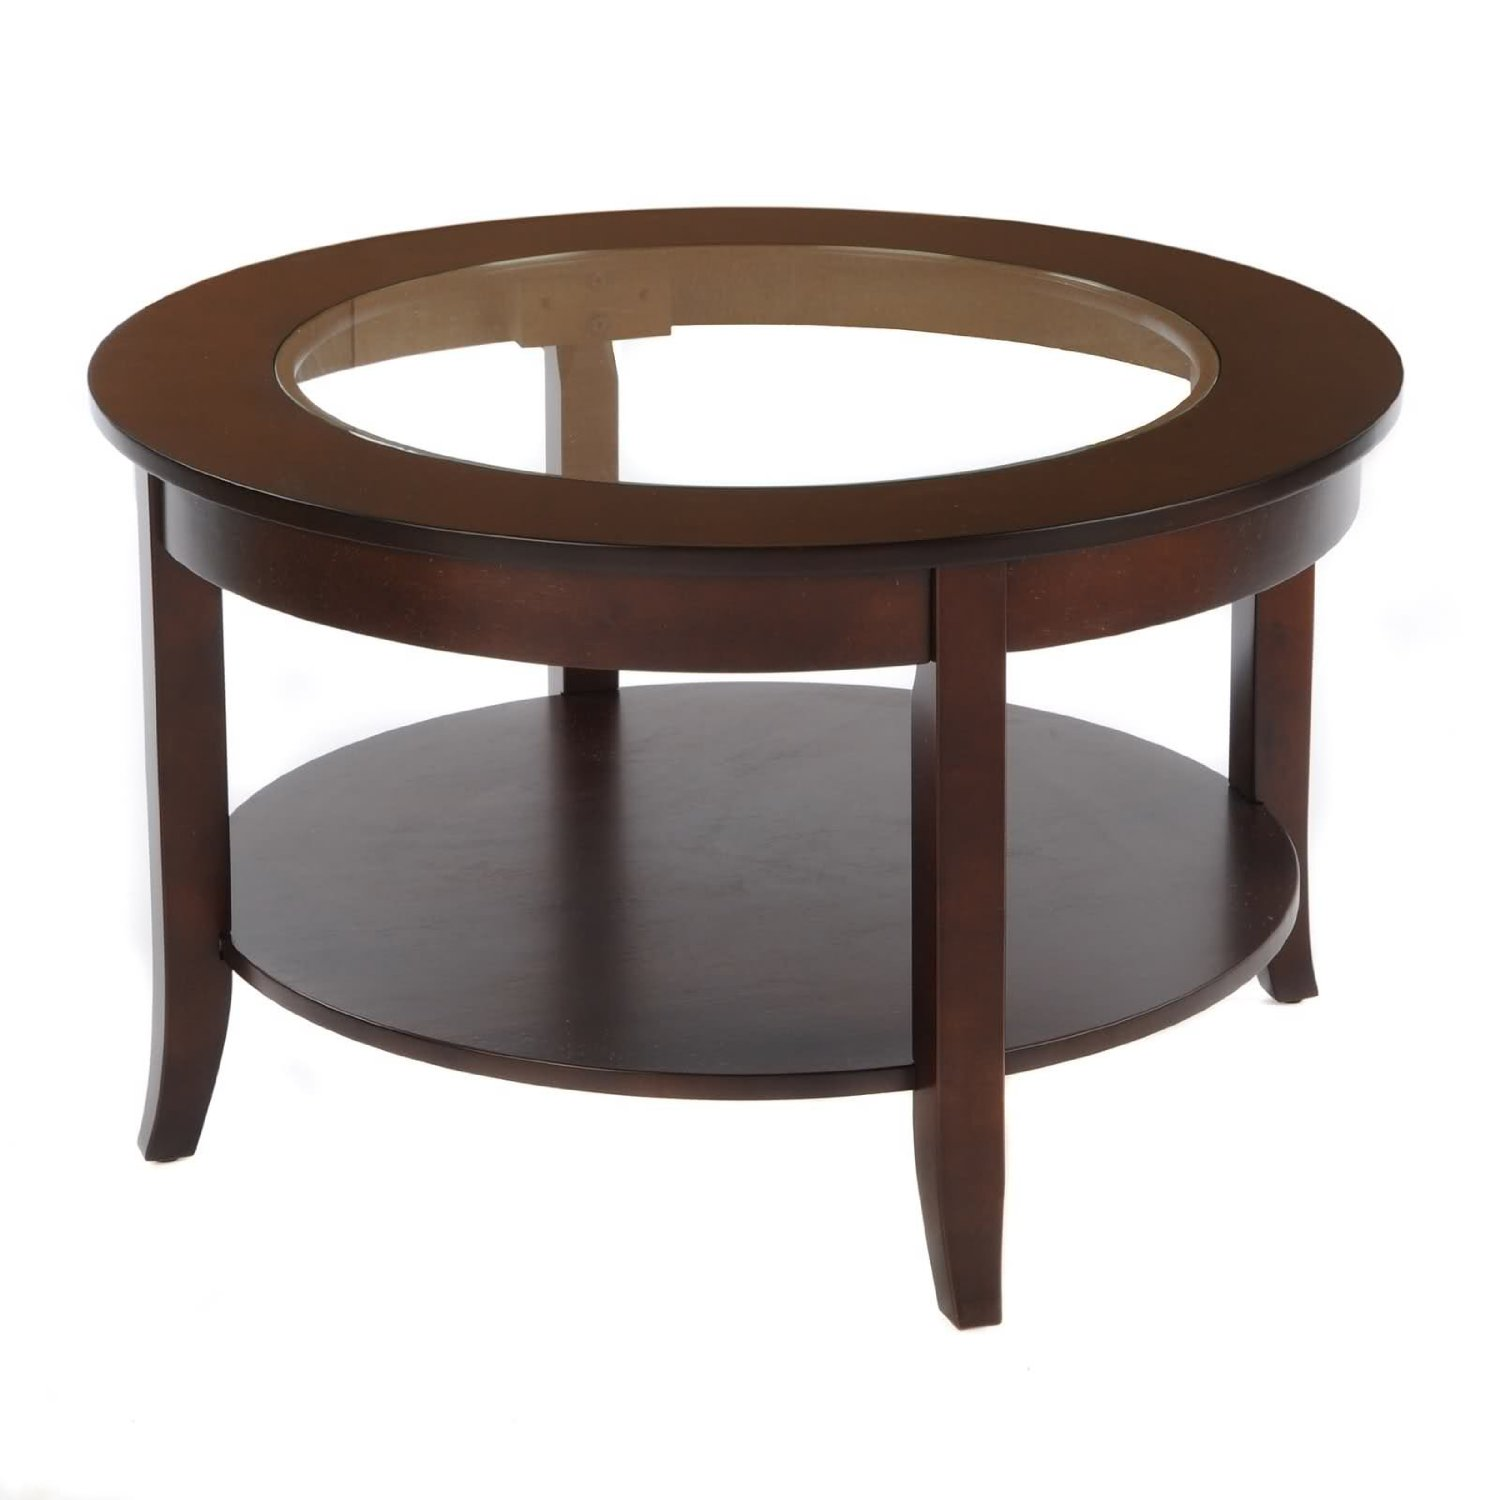 Delicieux Get Quotations · Bay Shore Collection Round Glass Top Coffee Table,  Espresso, 30 Inch